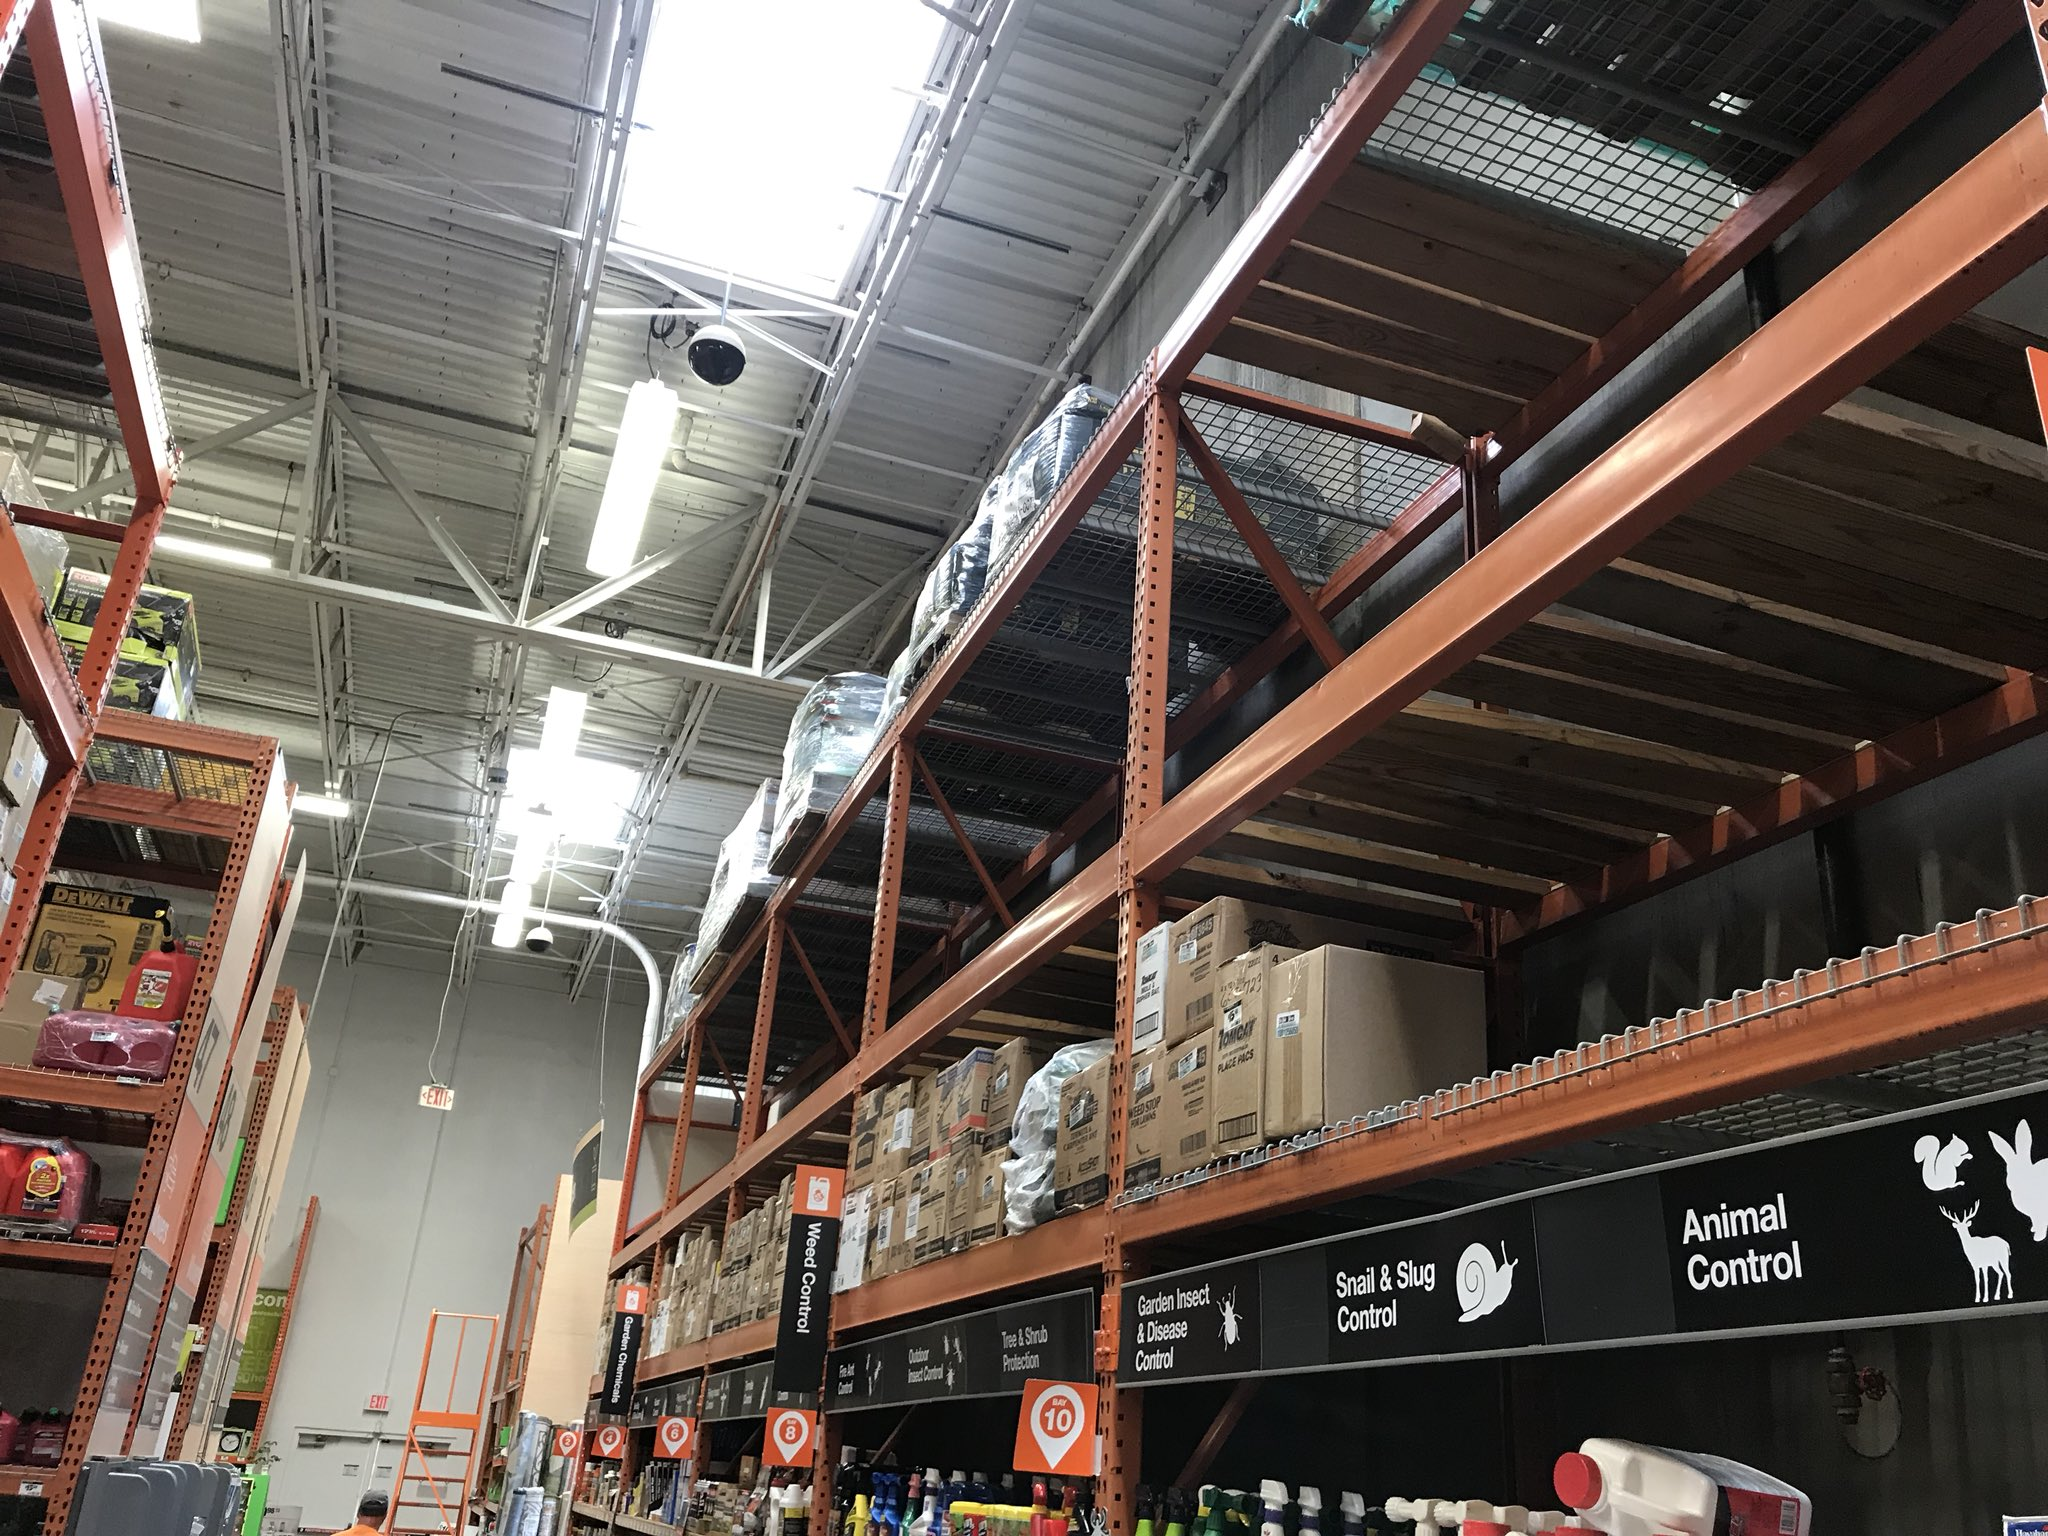 Gulfport Home Depot On Twitter 2hours Of Solid Met Store Packdown Power Priceless Hddistrict132 Lazarus Chris Ryanleblanchd